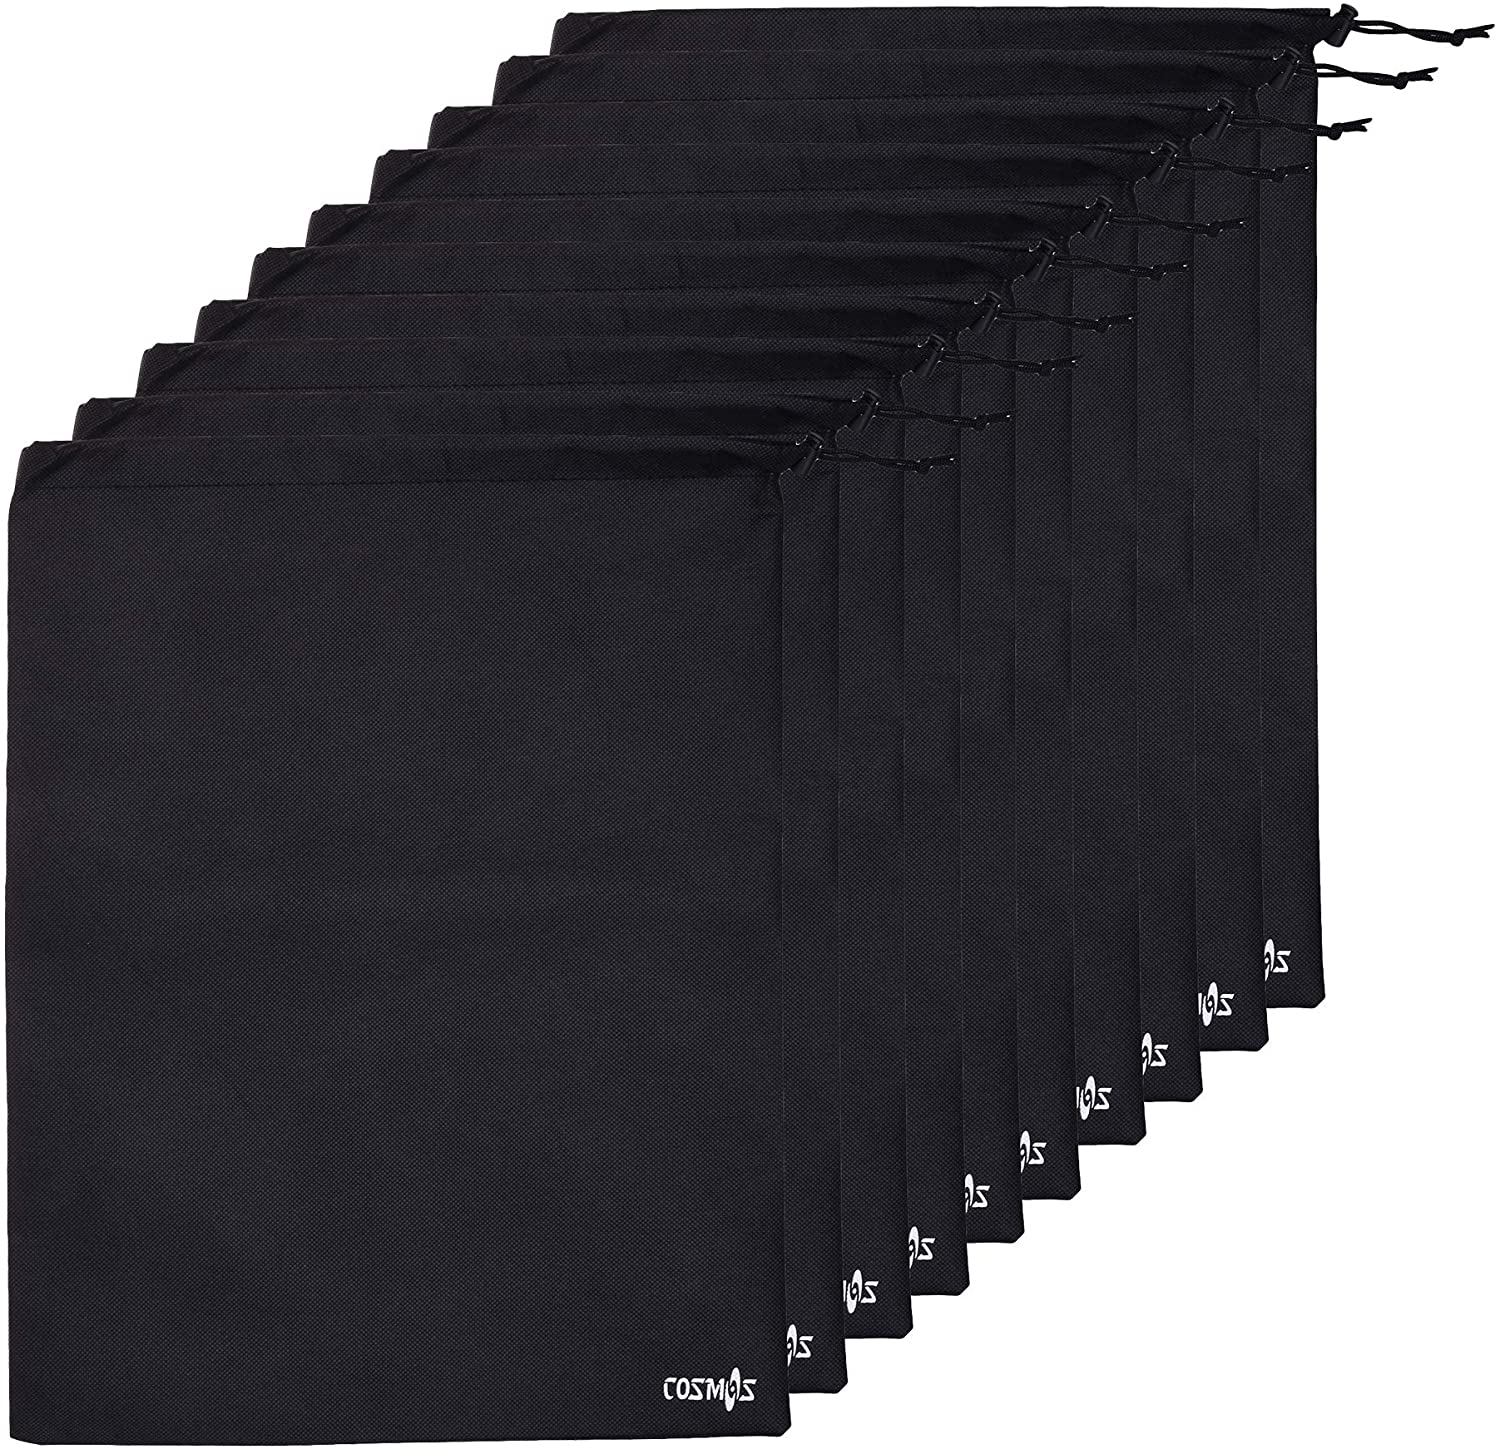 Cosmos 10 pcs Non-Woven Black Color Shoe Bag with drawstring for travel/carrying